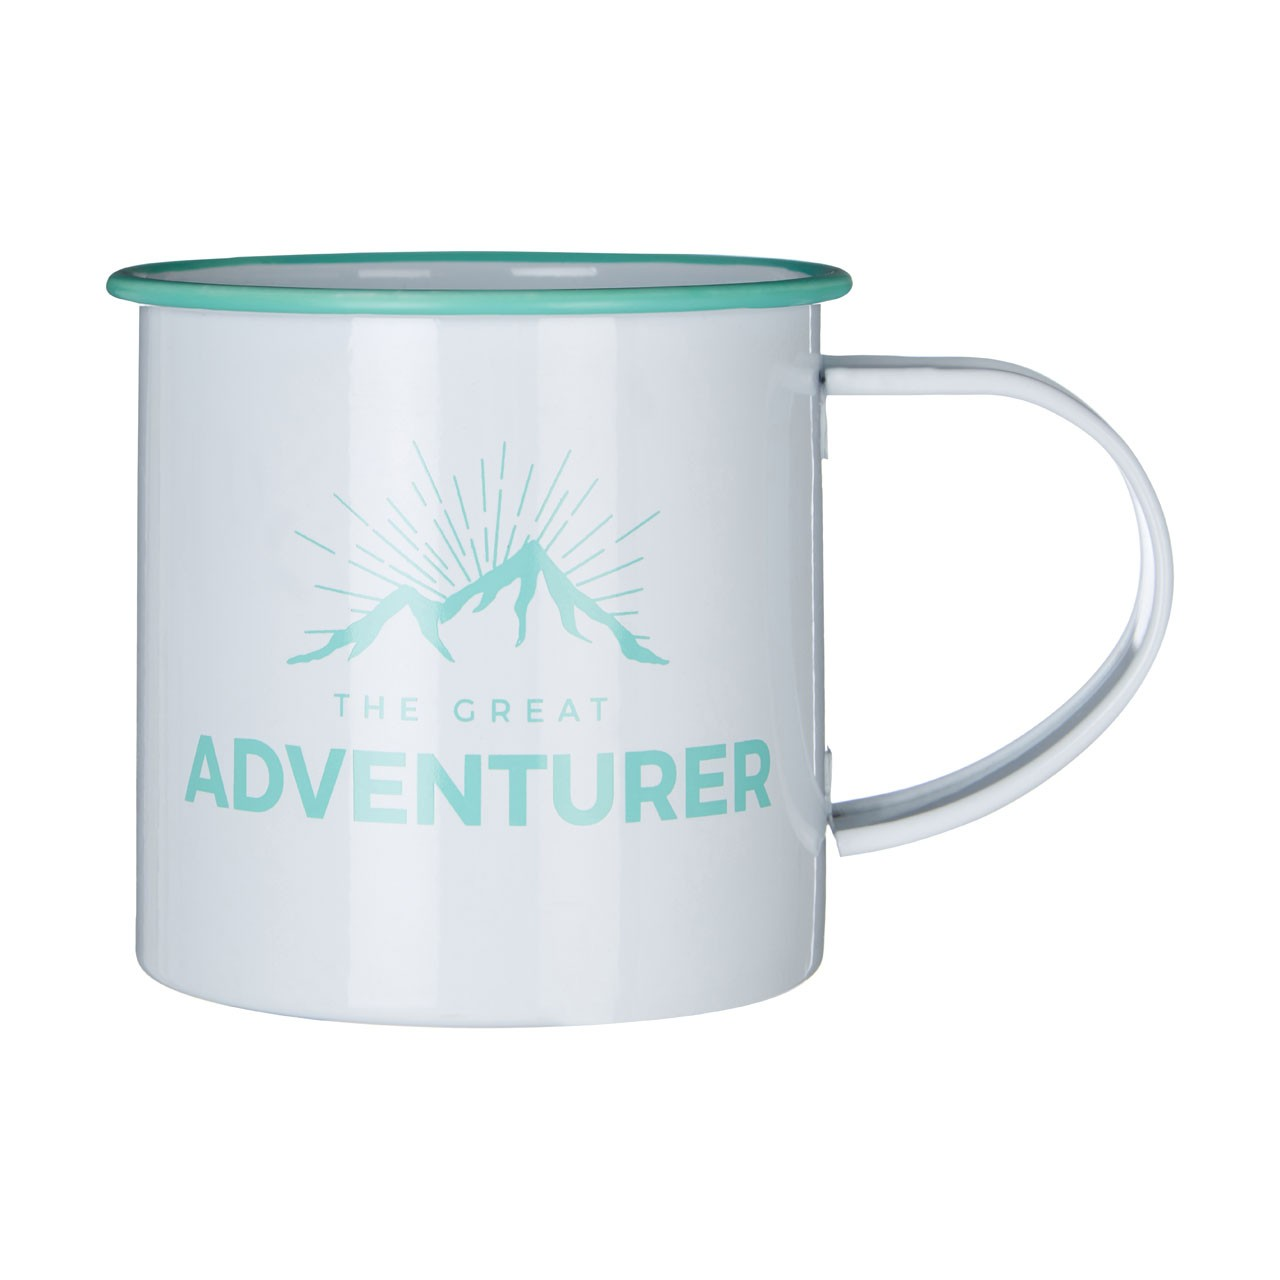 Prime Furnishing Galvanised Steel Adventurer Mugs - Set Of 6